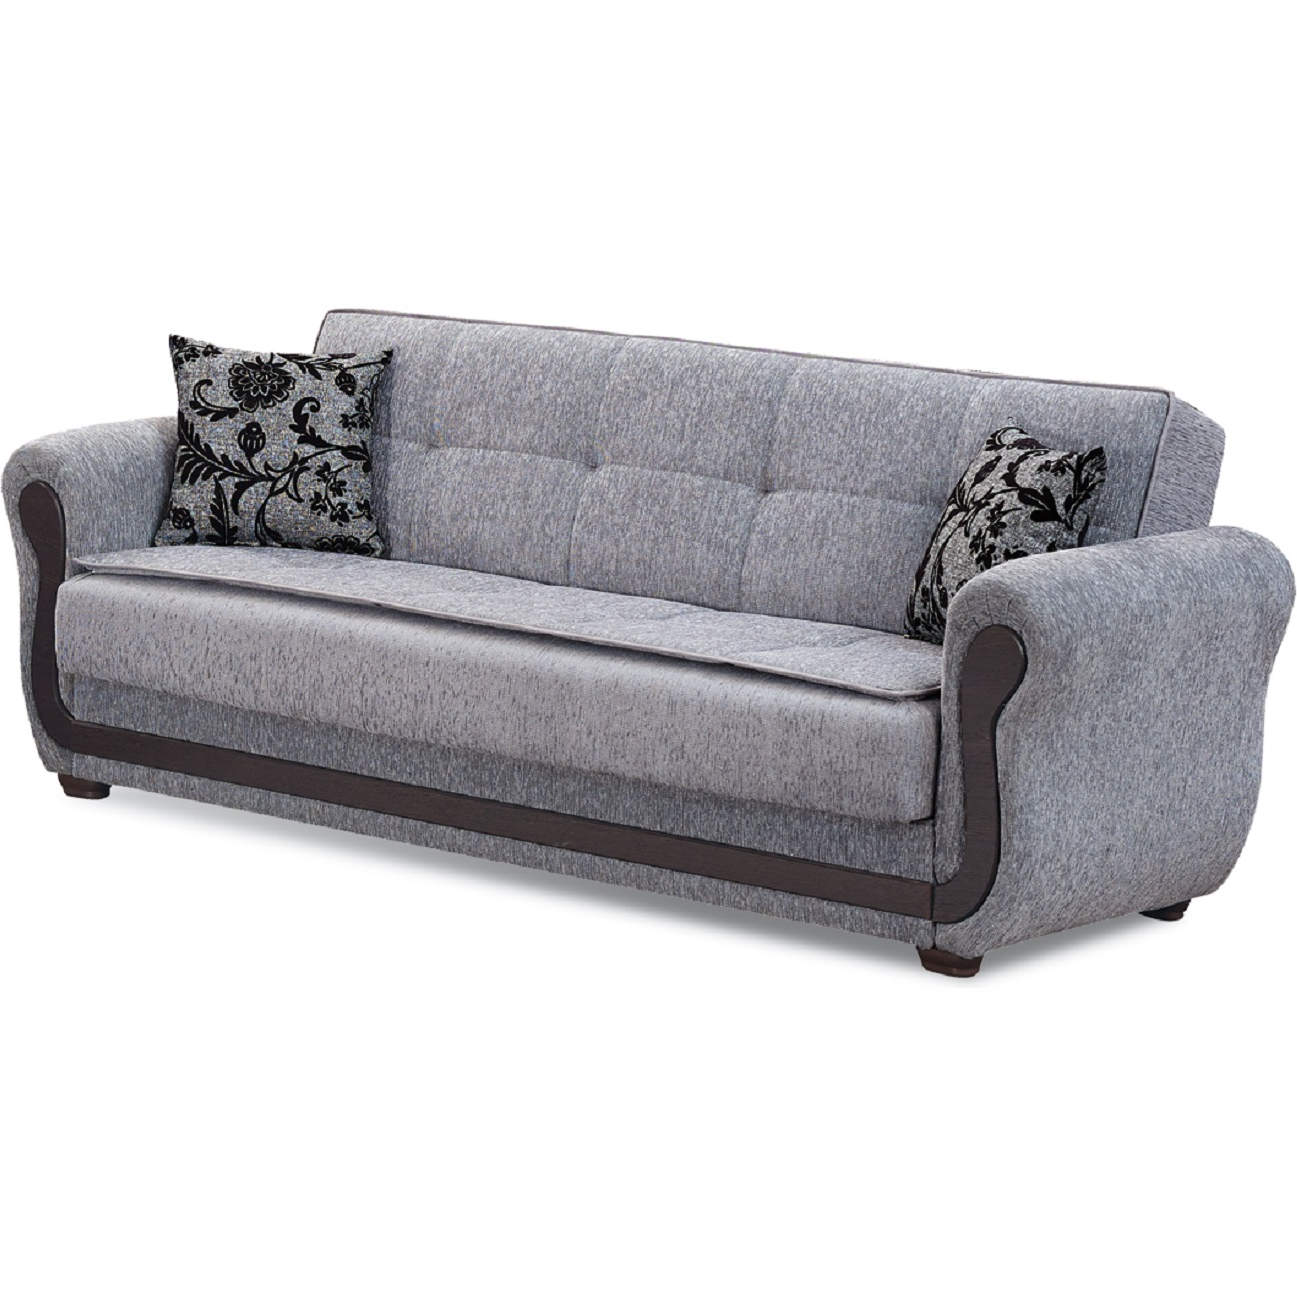 Surf Ave Sleeper Sofa in Light Grey Chenille by Empire Furniture